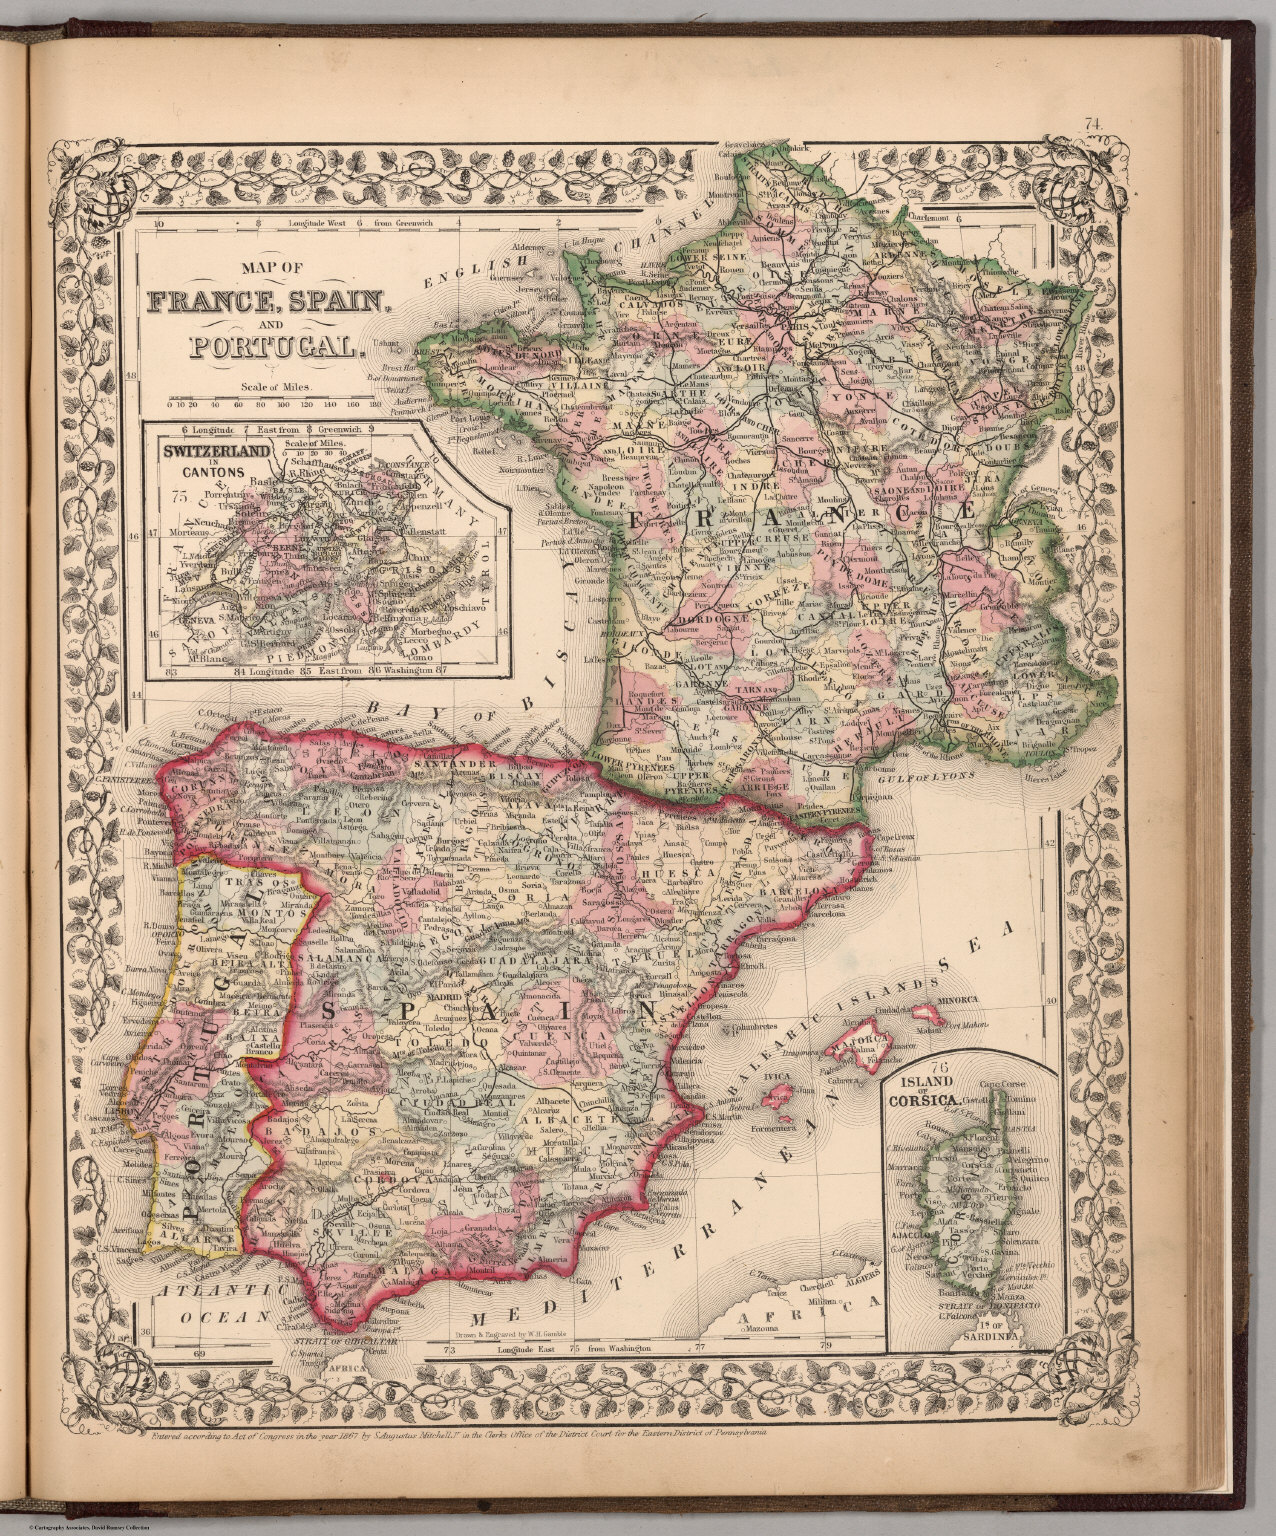 Map Of France Spain And Portugal David Rumsey Historical Map - Spain historical map